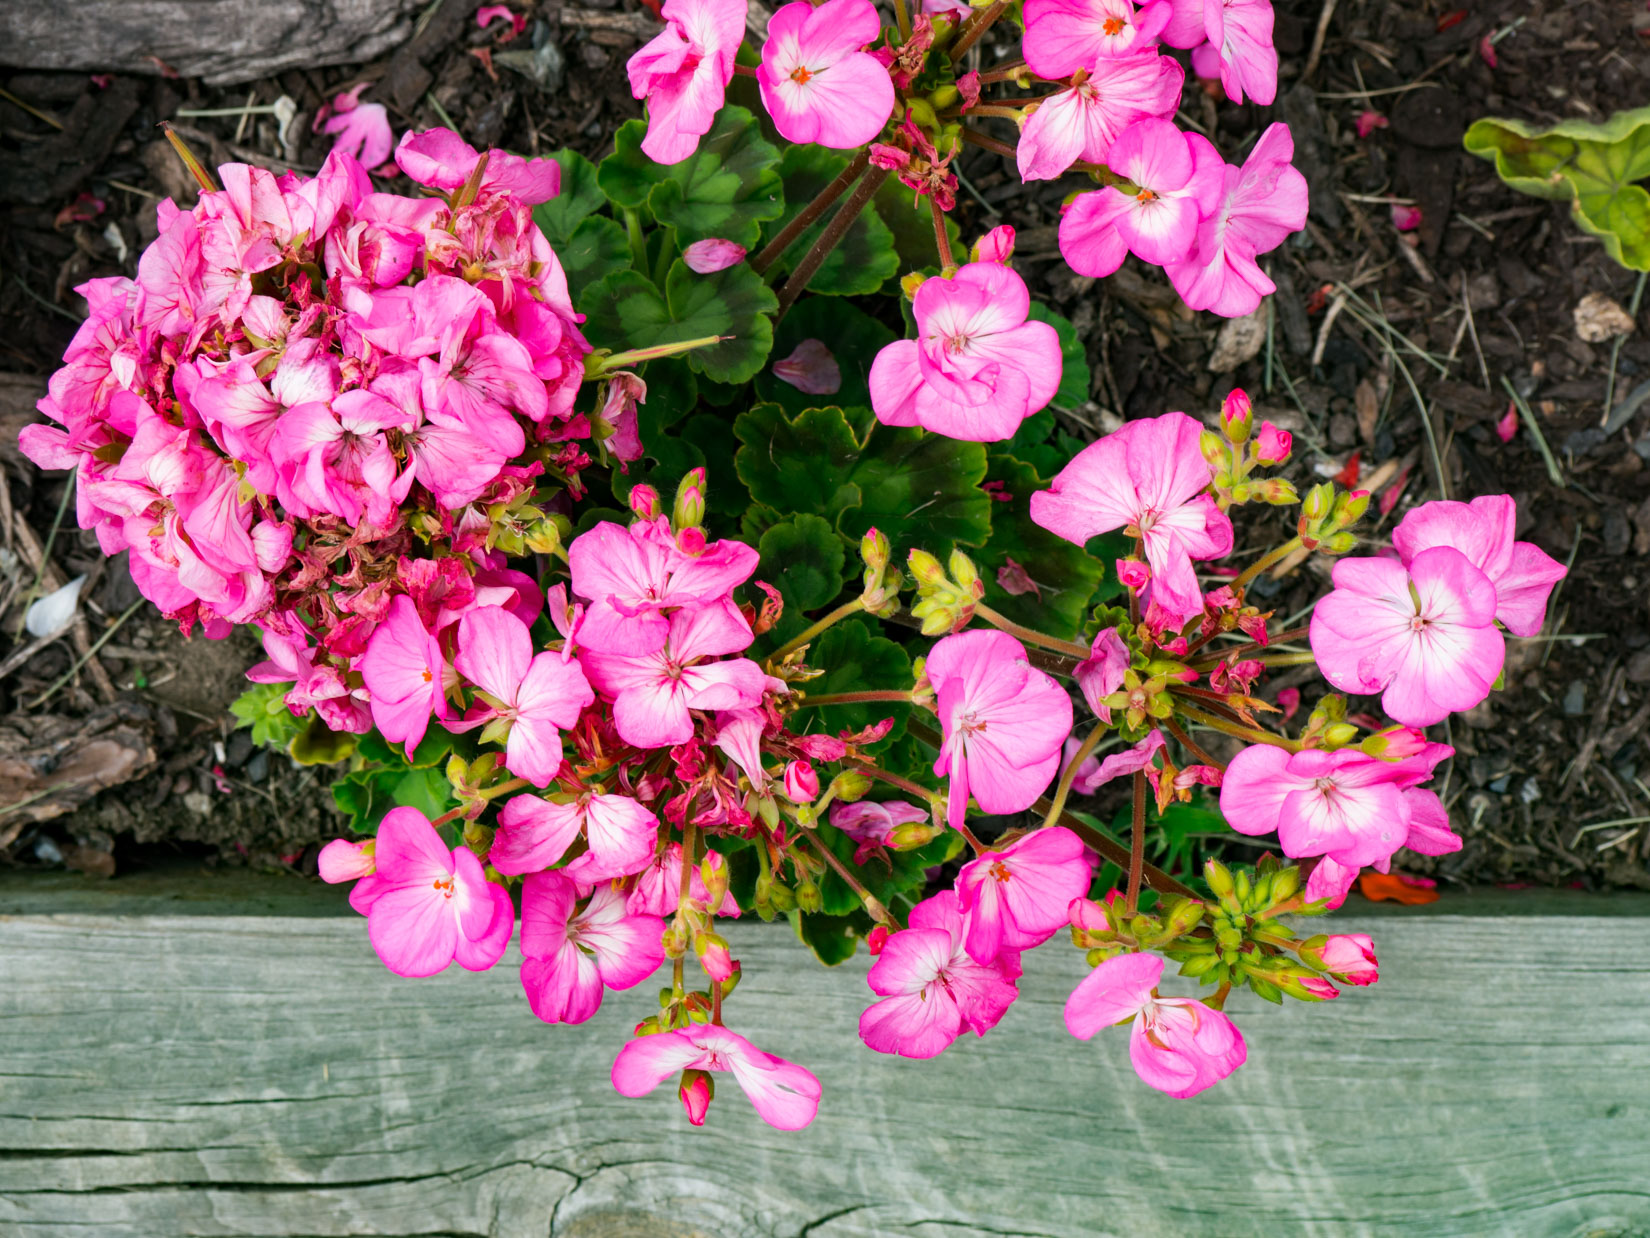 Pink Flowers Over Wood